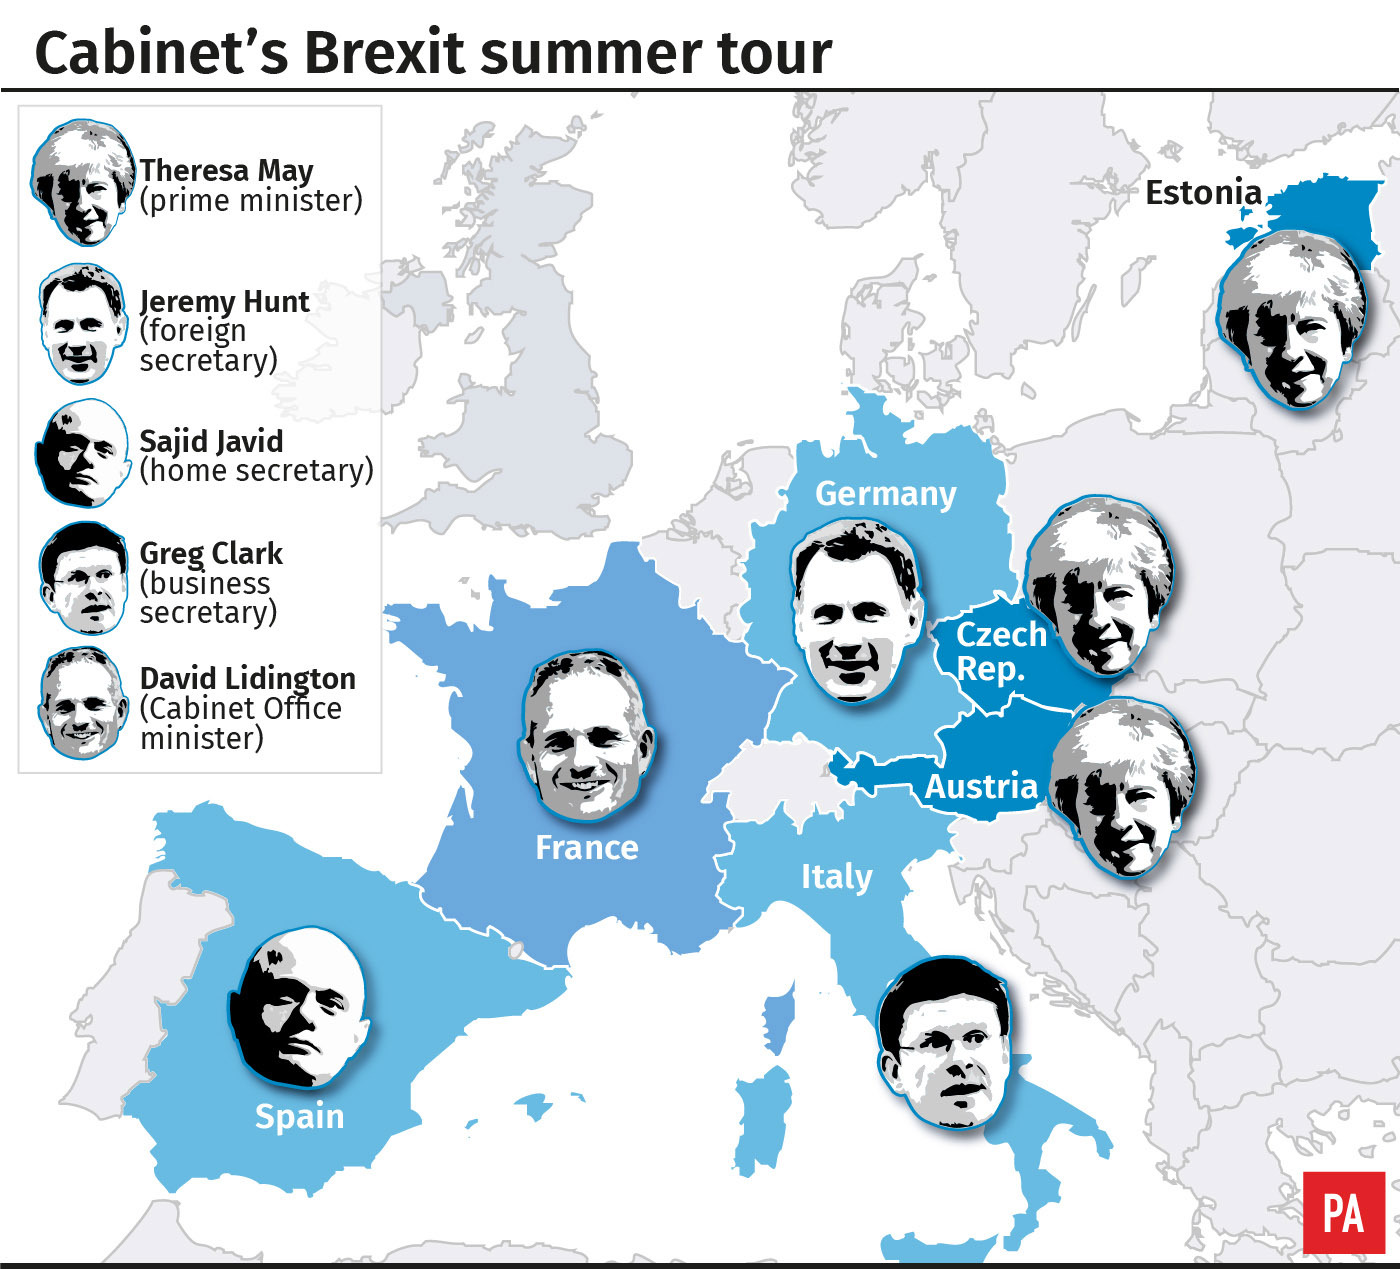 Cabinet's Brexit summer tour graphic